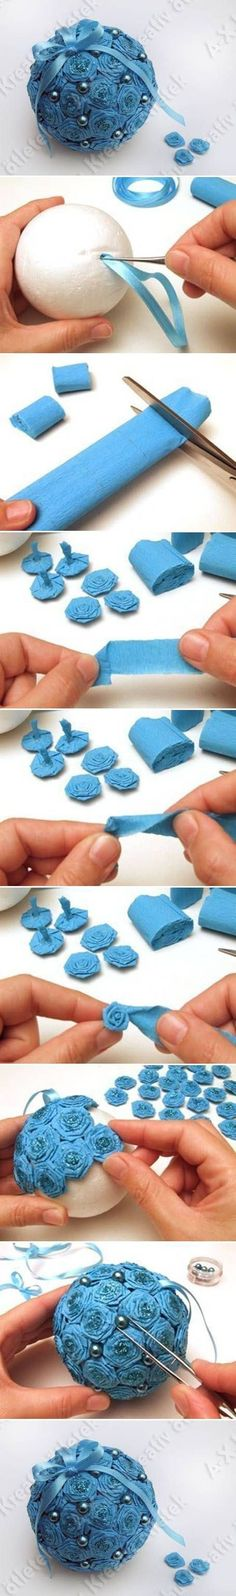 Great Craft | Click to see More DIY & Crafts Tutorials on Our Site.